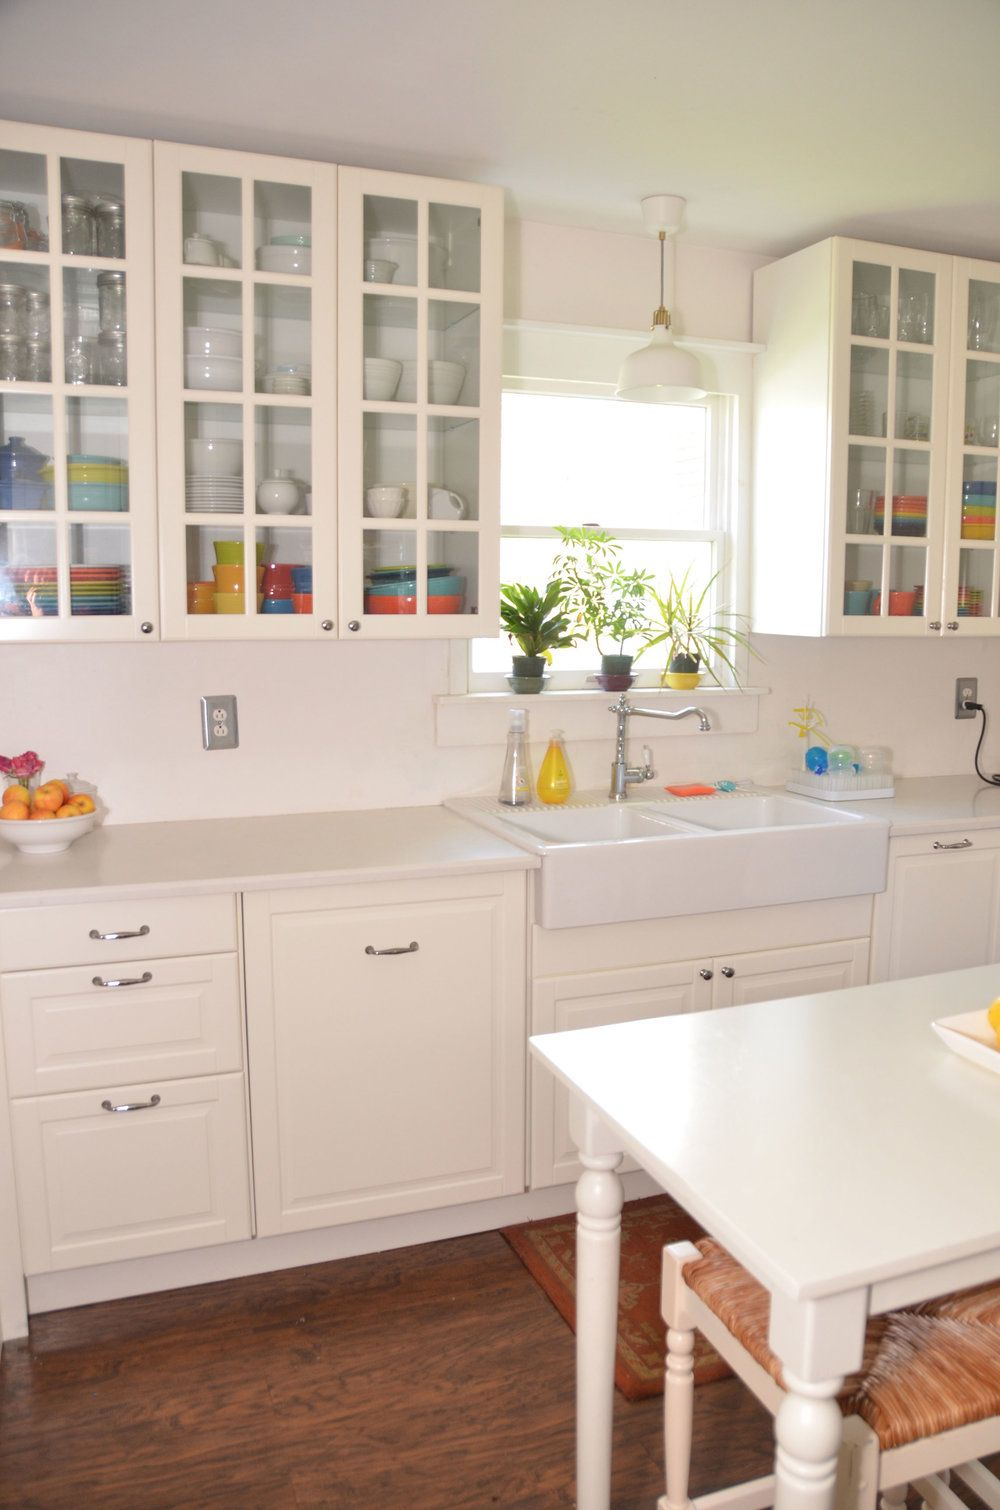 image result for tall upper cabinets kitchen cabinets kitchen design kitchen on kitchen cabinets upper id=64002